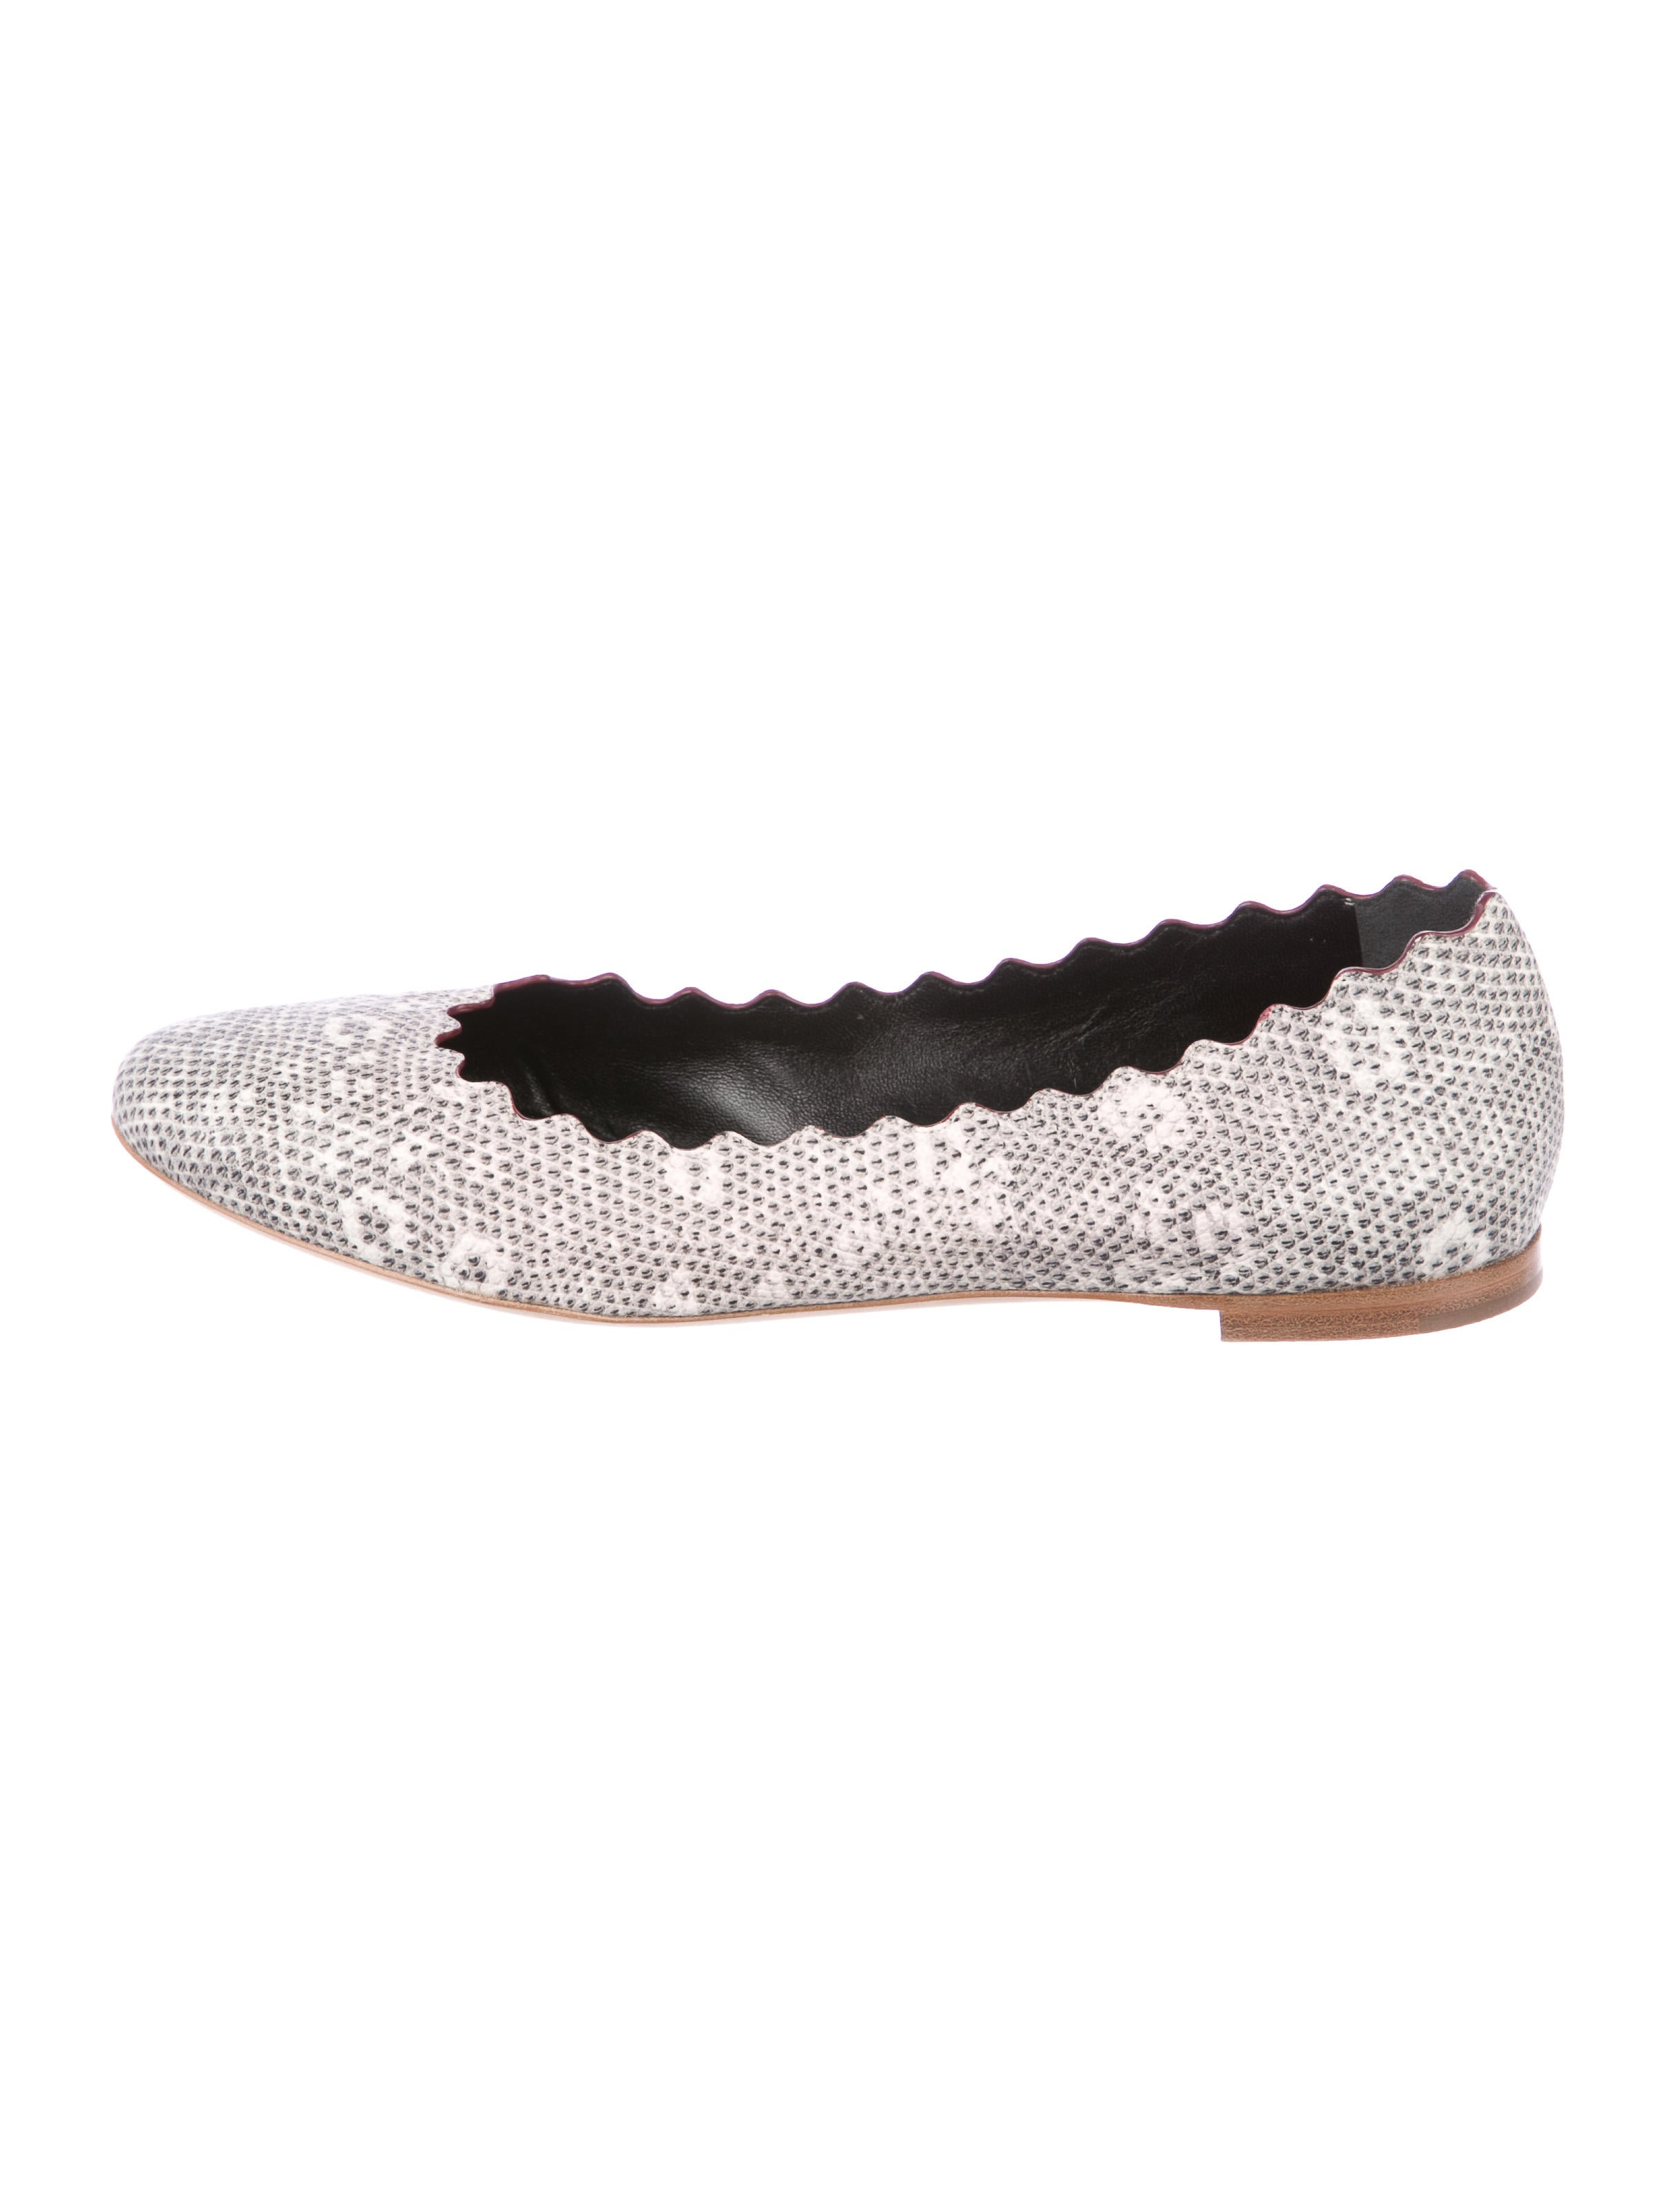 outlet many kinds of discount marketable Chloé Karung Lauren Flats cheap sale high quality really online cheap sale reliable 8Ug7p3